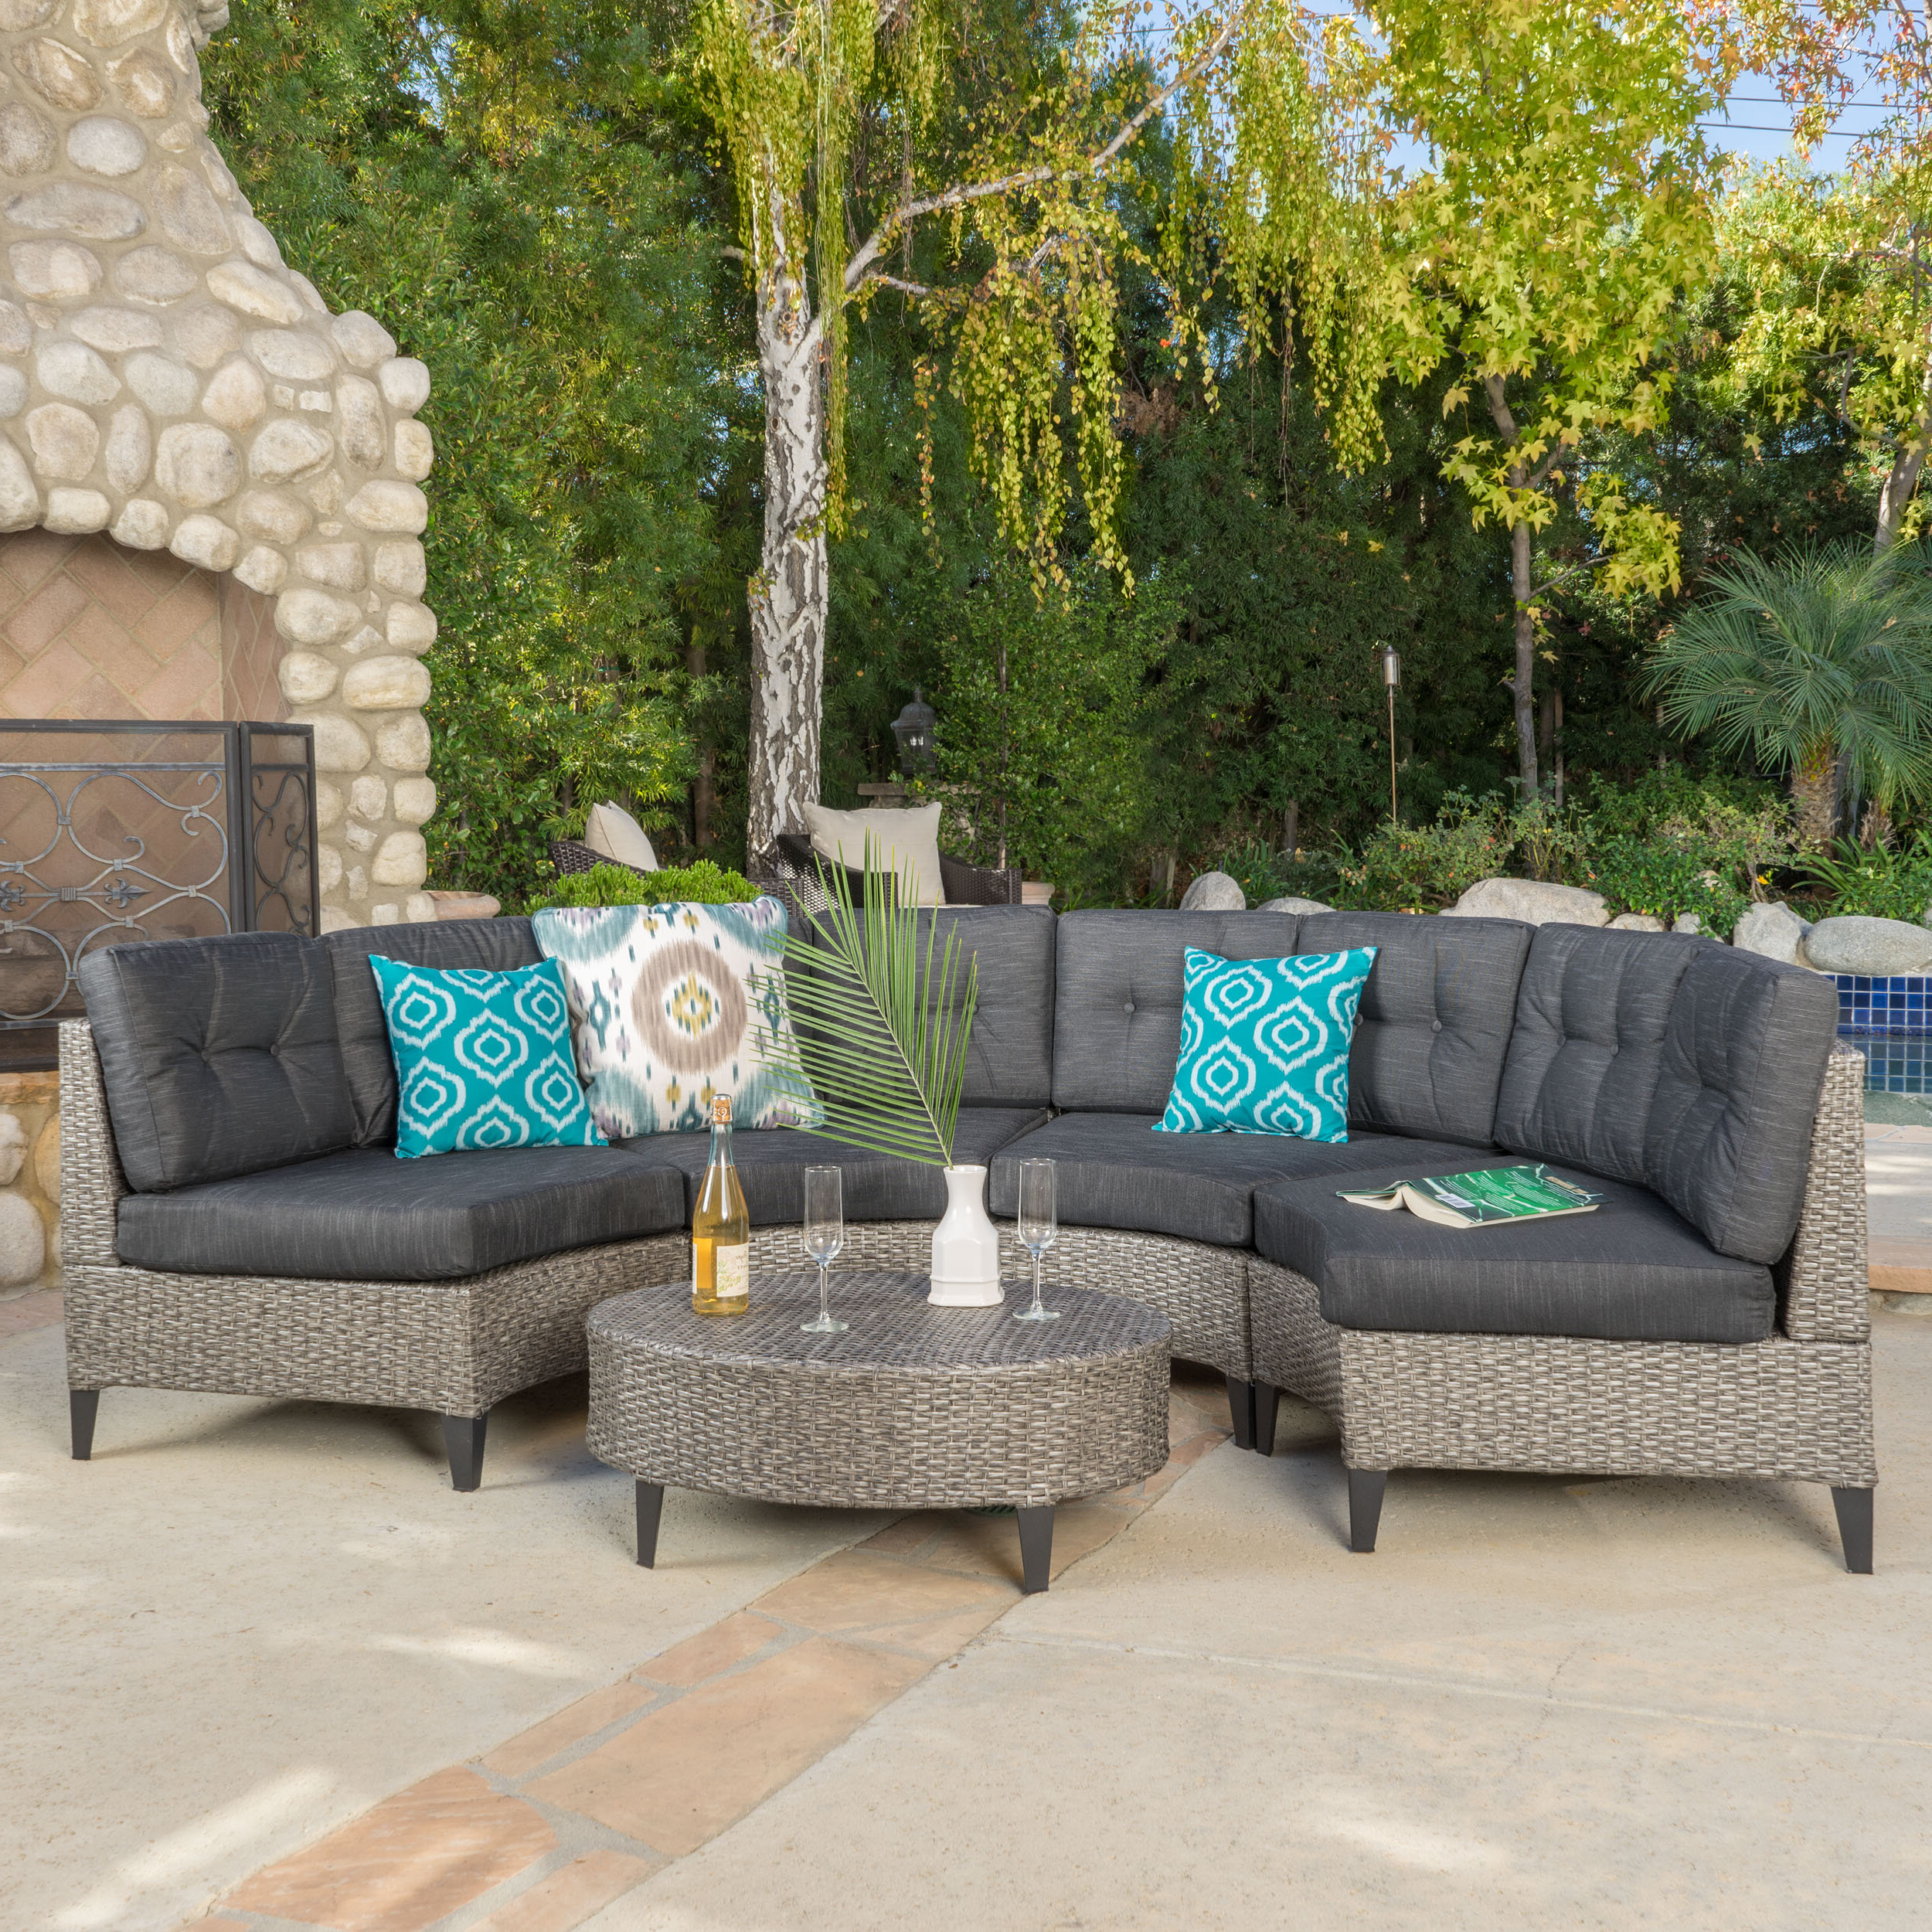 Yulganna 5 Piece Rattan Sectional Seating Group With Cushions In Best And Newest Menifee Patio Sofas With Cushions (View 17 of 25)